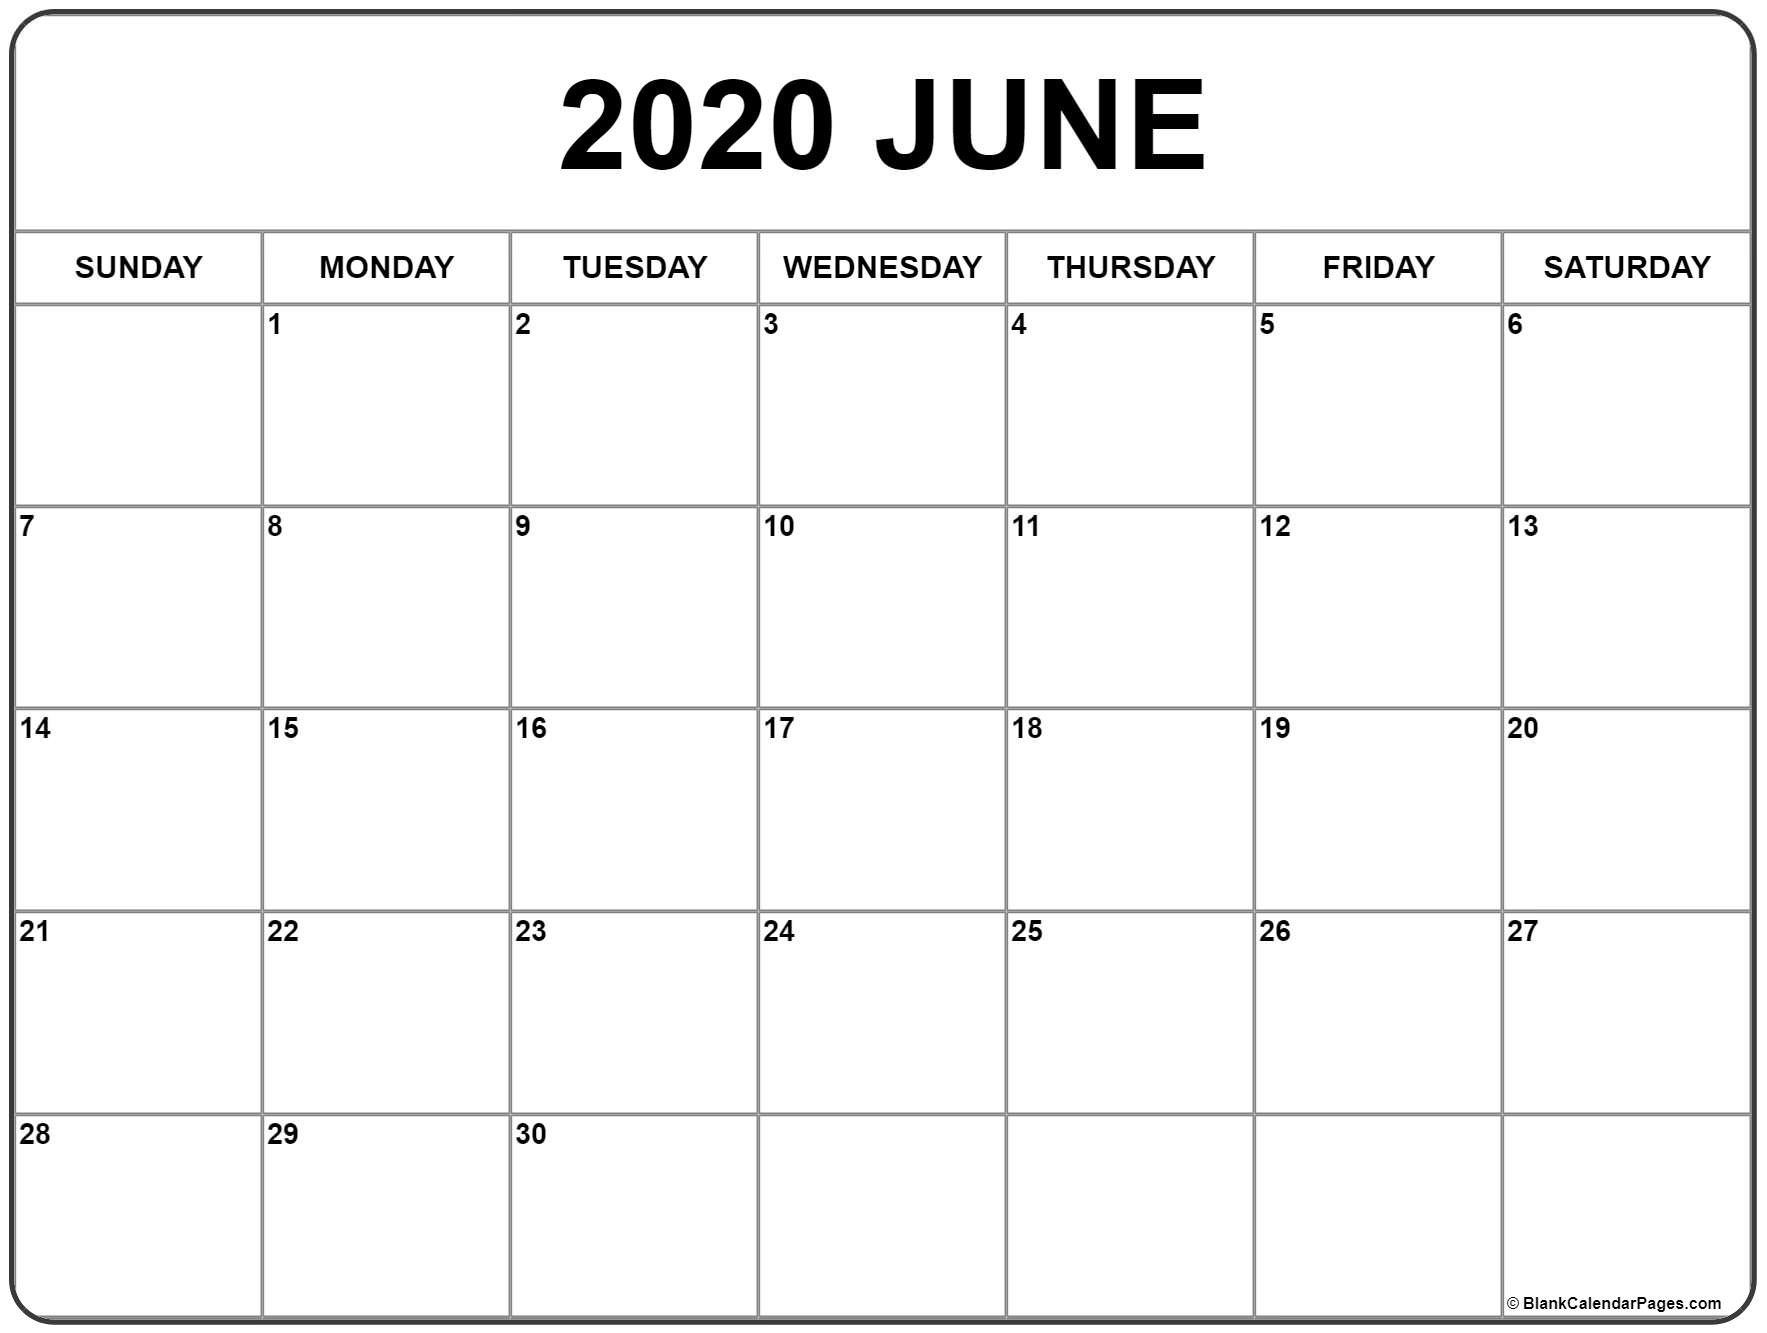 June 2020 Calendar | Free Printable Monthly Calendars inside Free Calendar At A Glance 2020